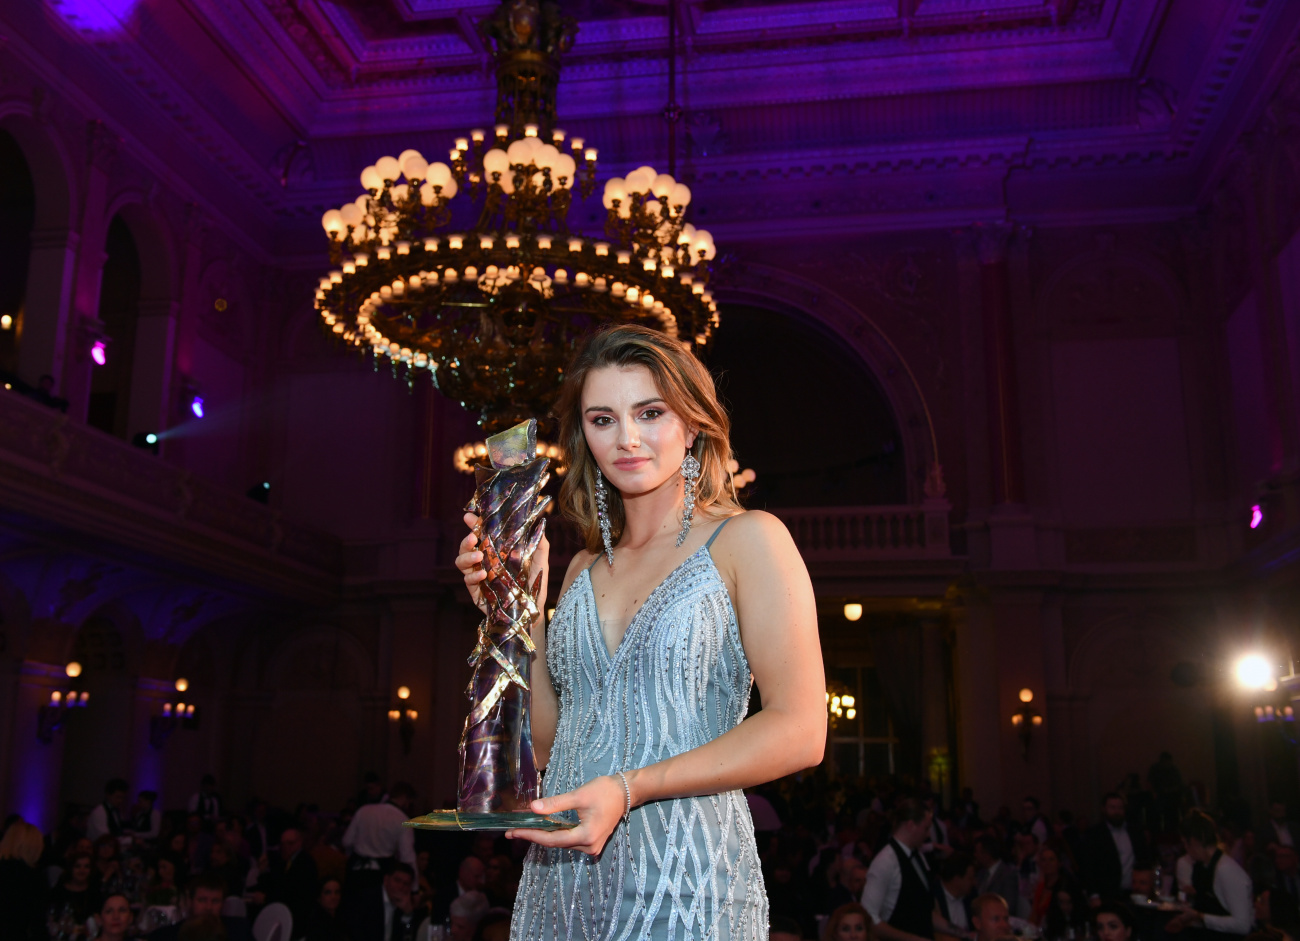 Golfista roku 2018 0246 2019 02 26 Photo Zdenek Sluka